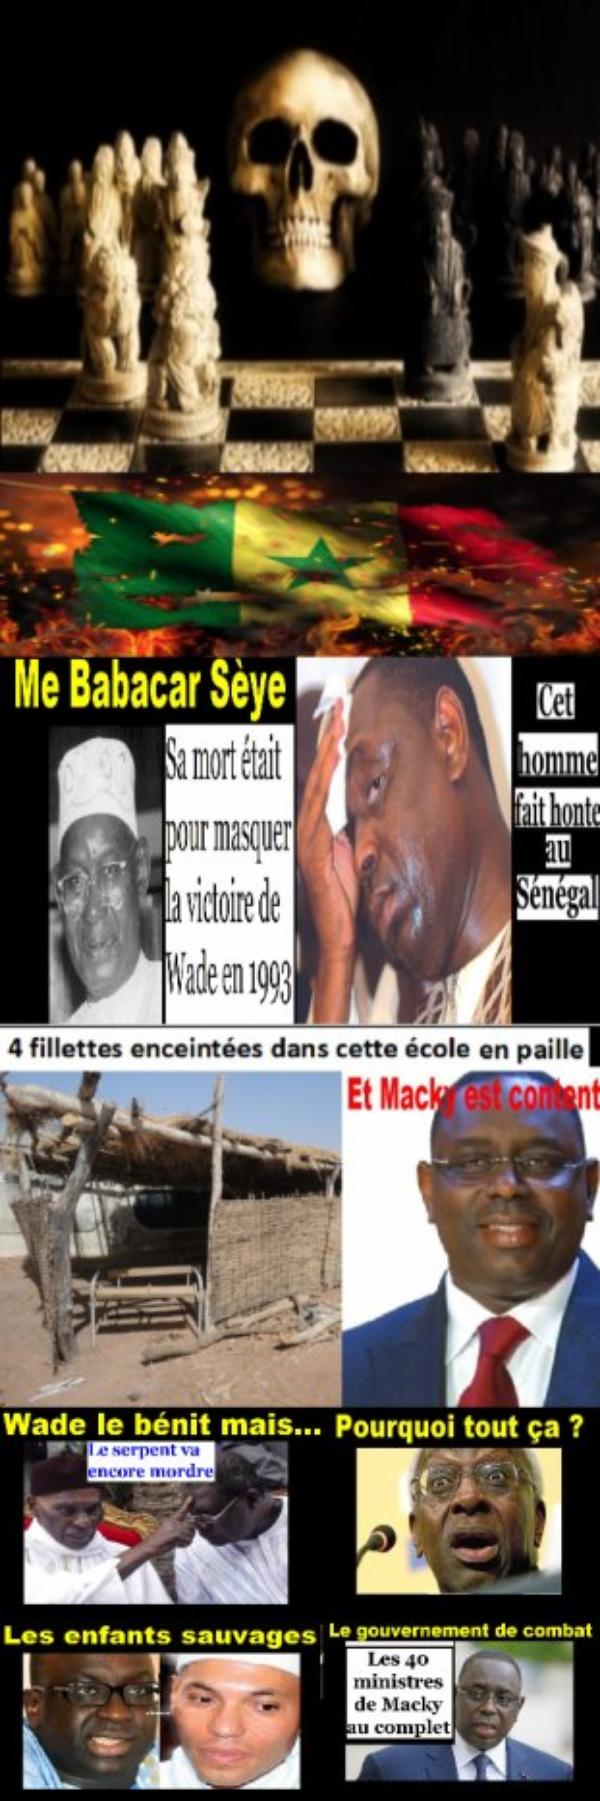 The winner of evil is about to be defeated. Why is he about to be defeated? Because it is better to choose to be defeated, than choosing winner and unjust!     Macky sall found guilty ... ! ! ! !